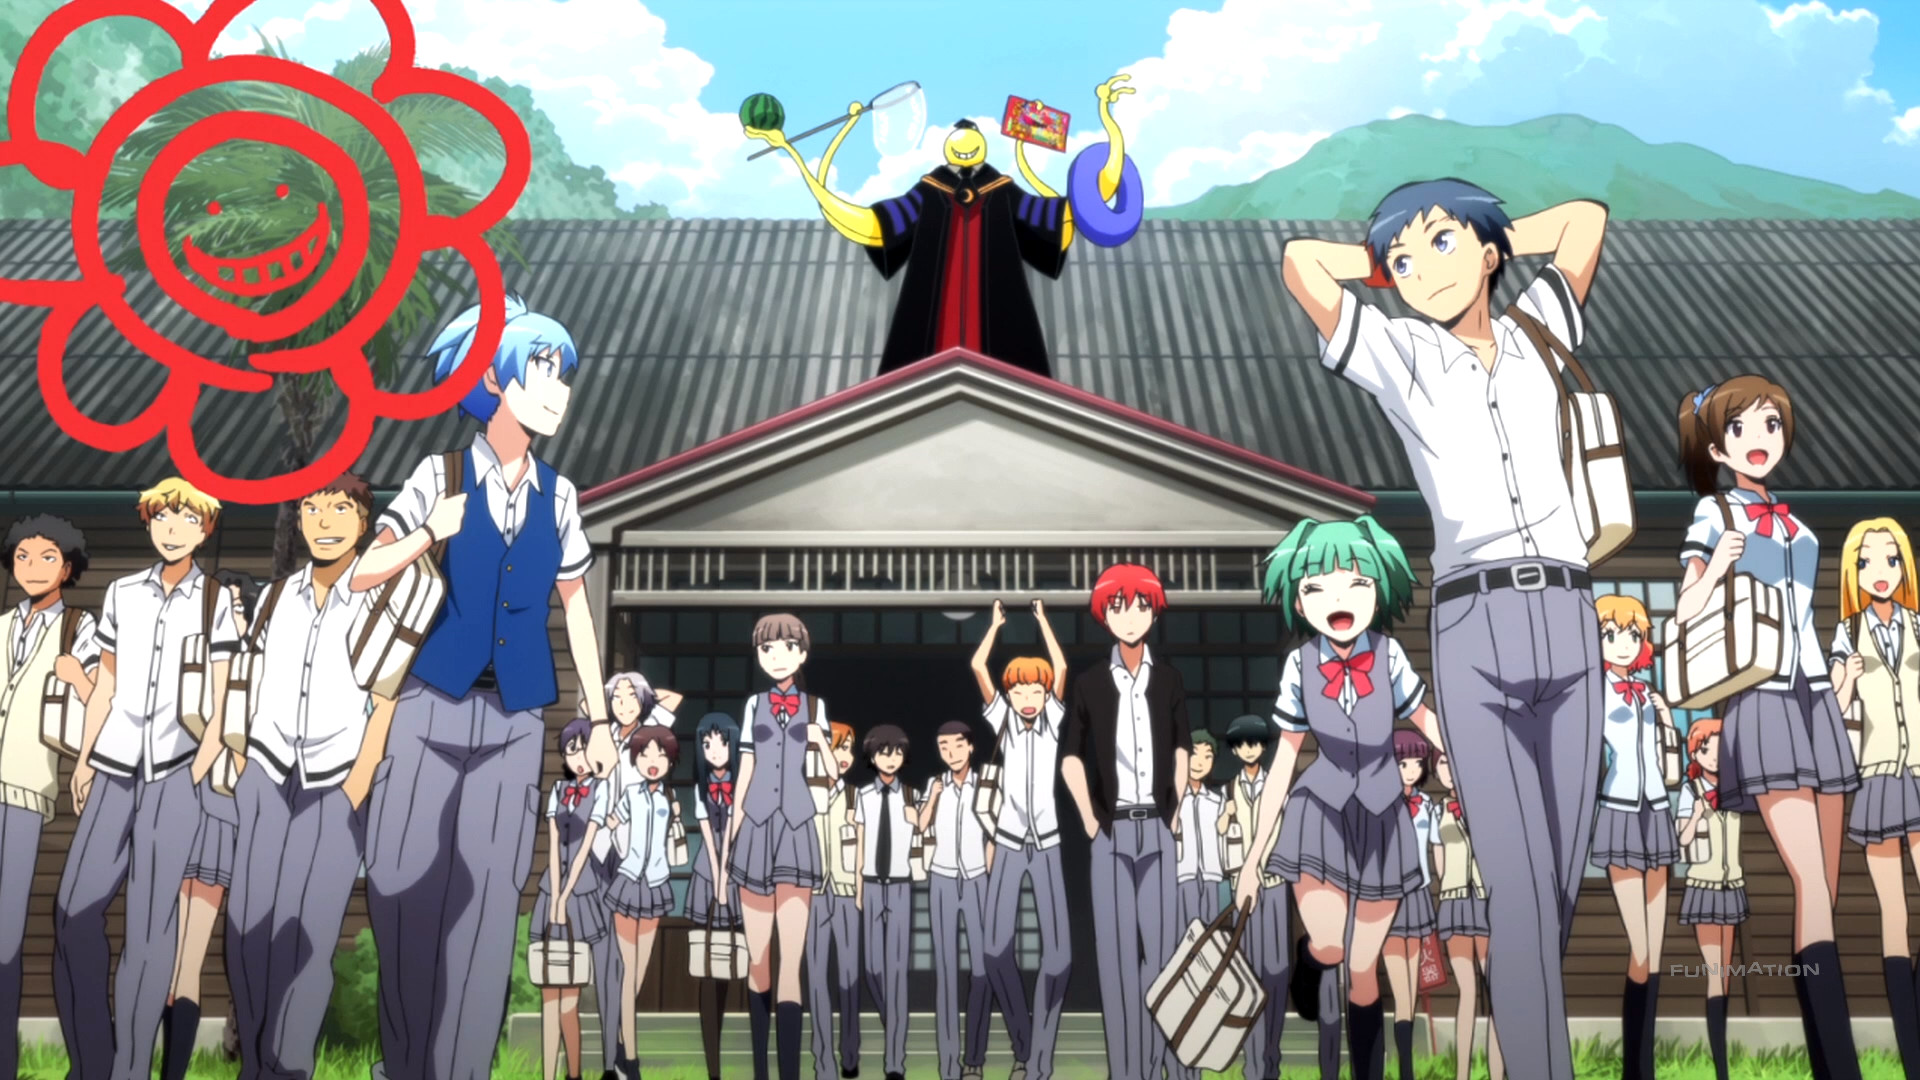 Assassination classroom wallpaper hd 87 images - Anime wallpaper assassination classroom ...